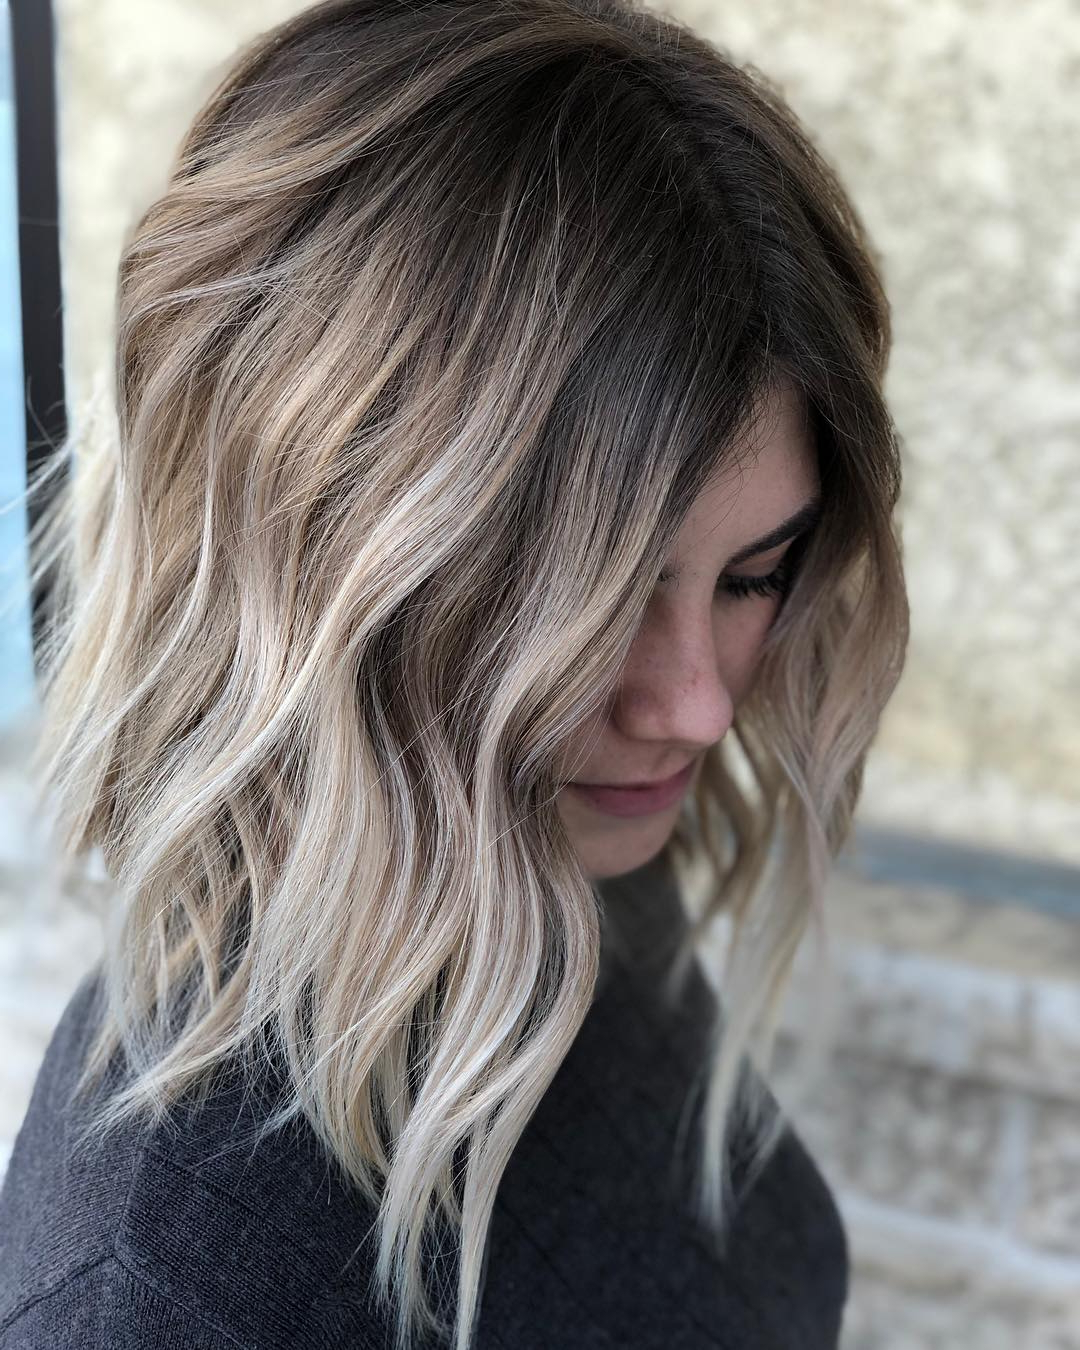 Pretty Balayage Ombre Hair Styles For Shoulder Length Hair, Medium With Famous Ombre Medium Hairstyles (View 6 of 20)